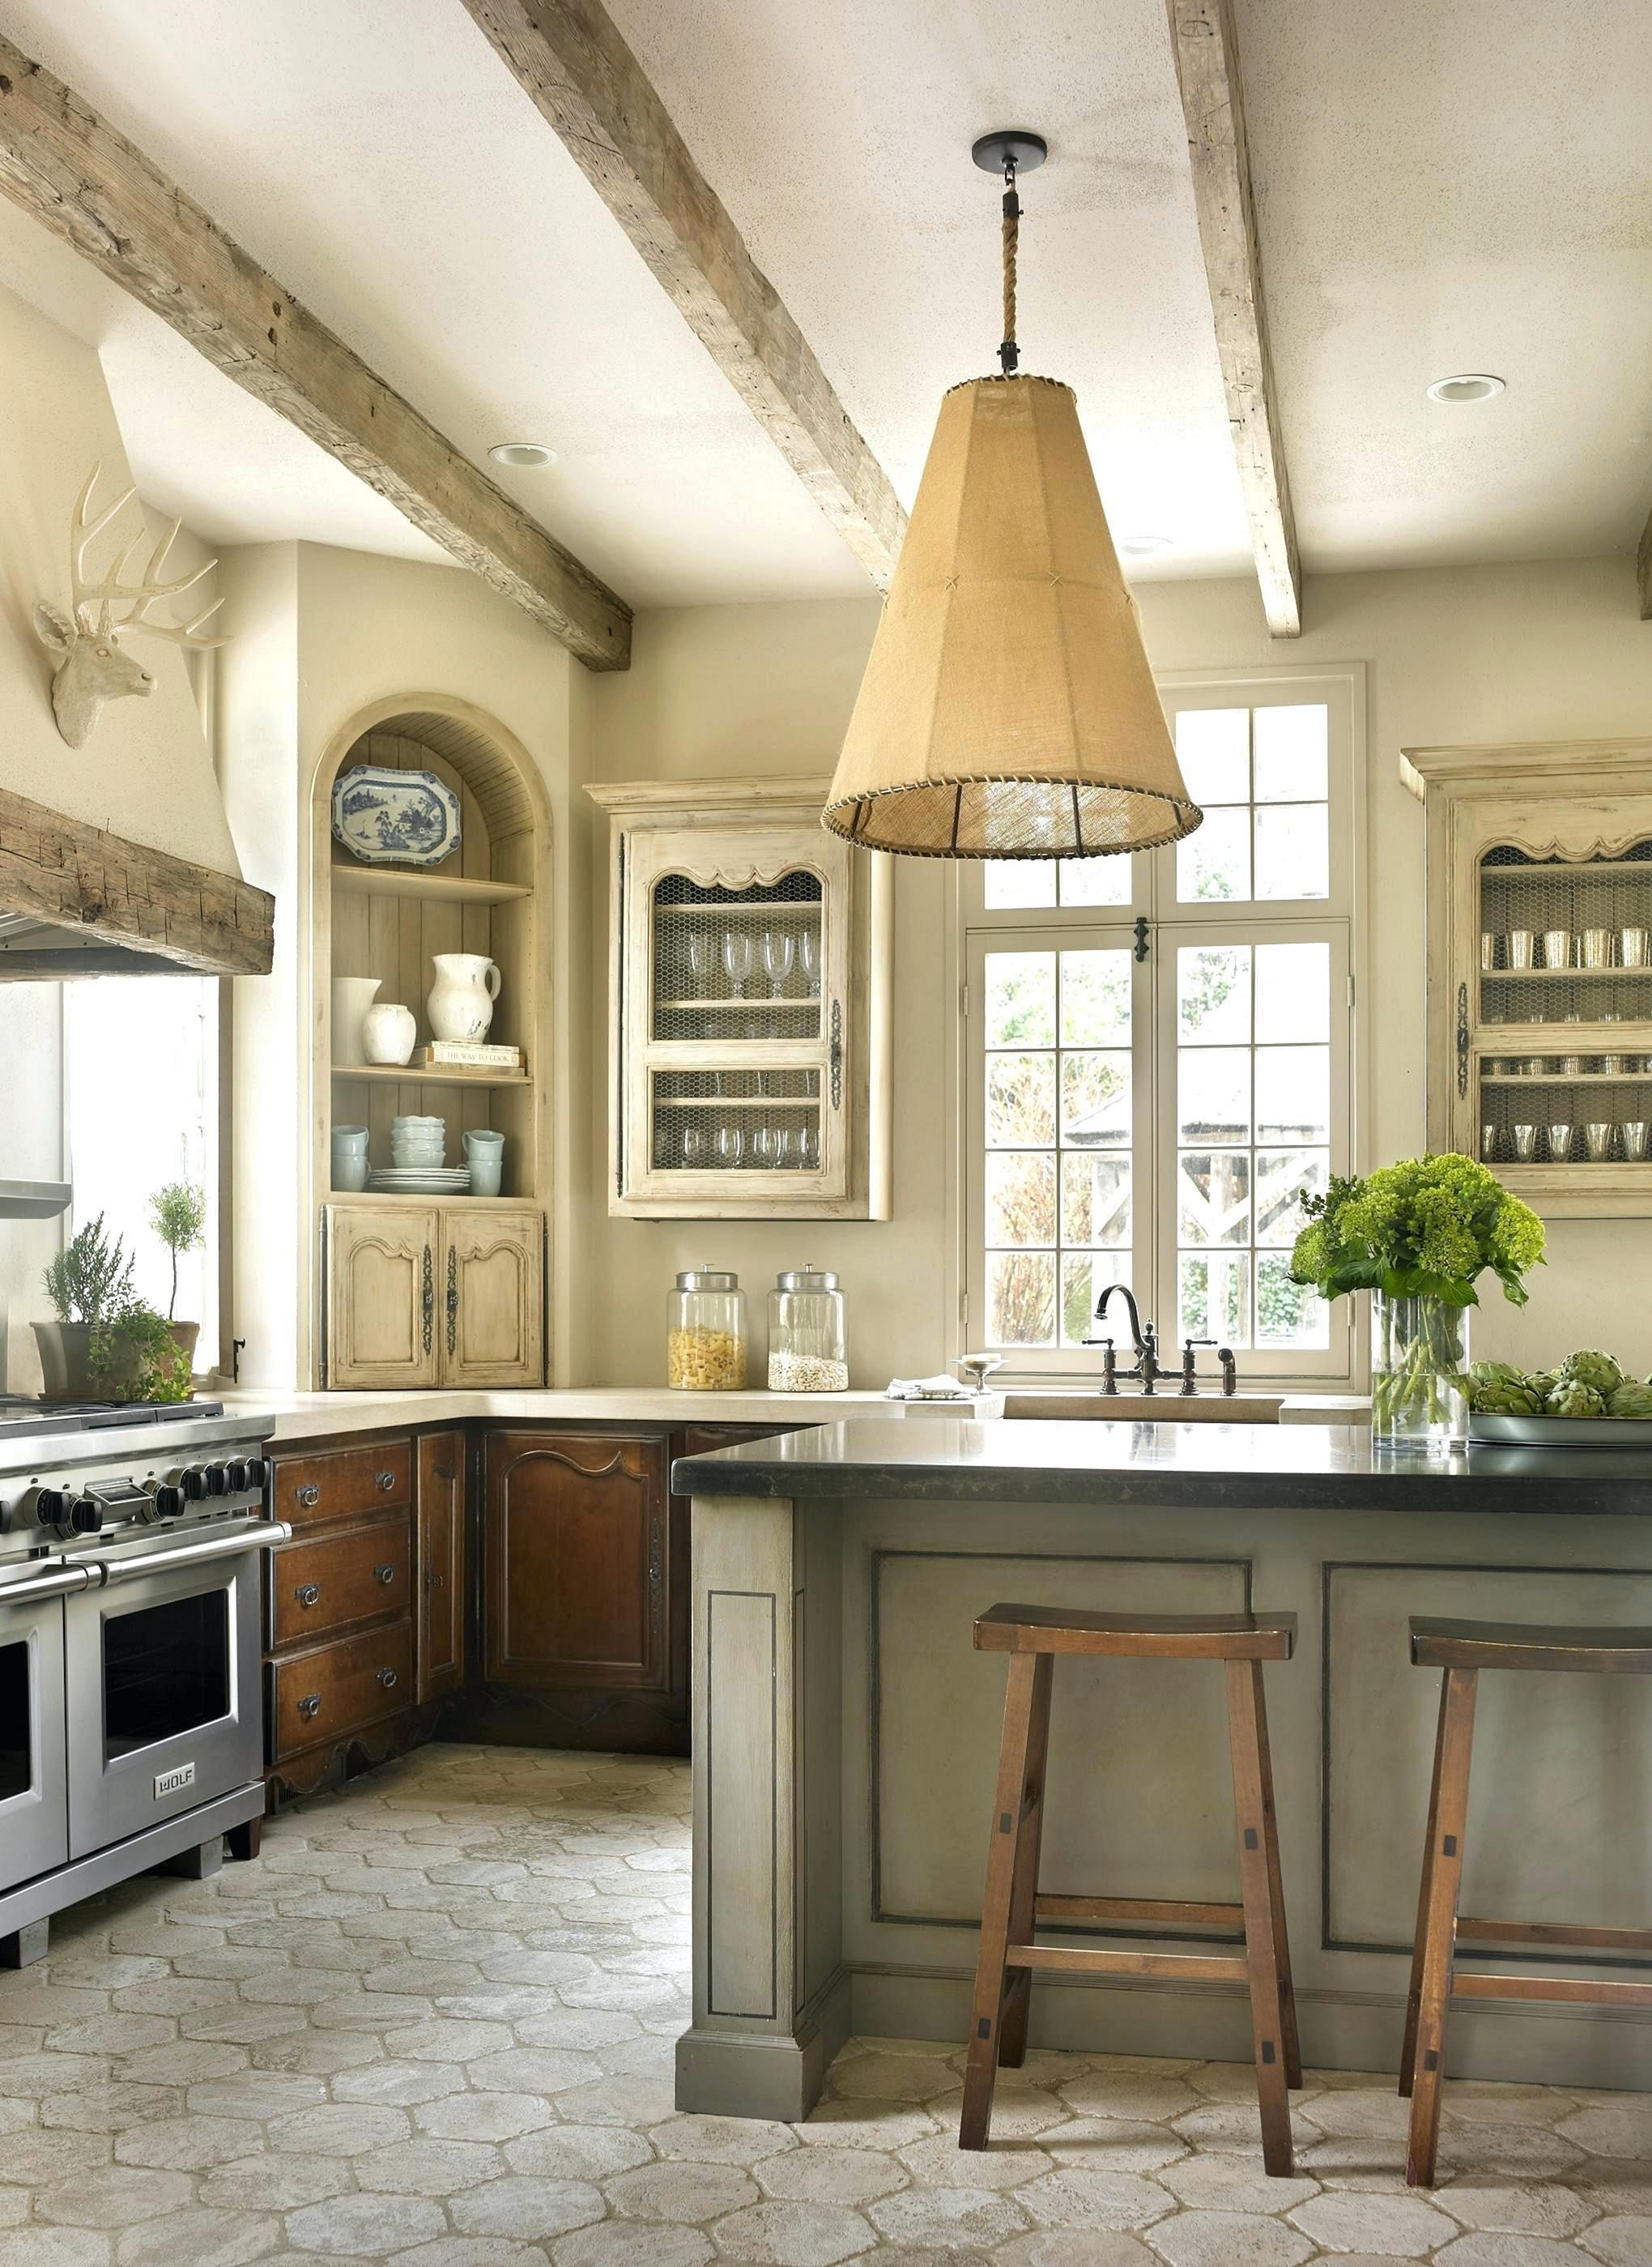 35 easy and simple french country kitchen design ideas french country decorating kitchen on kitchen ideas simple id=70315